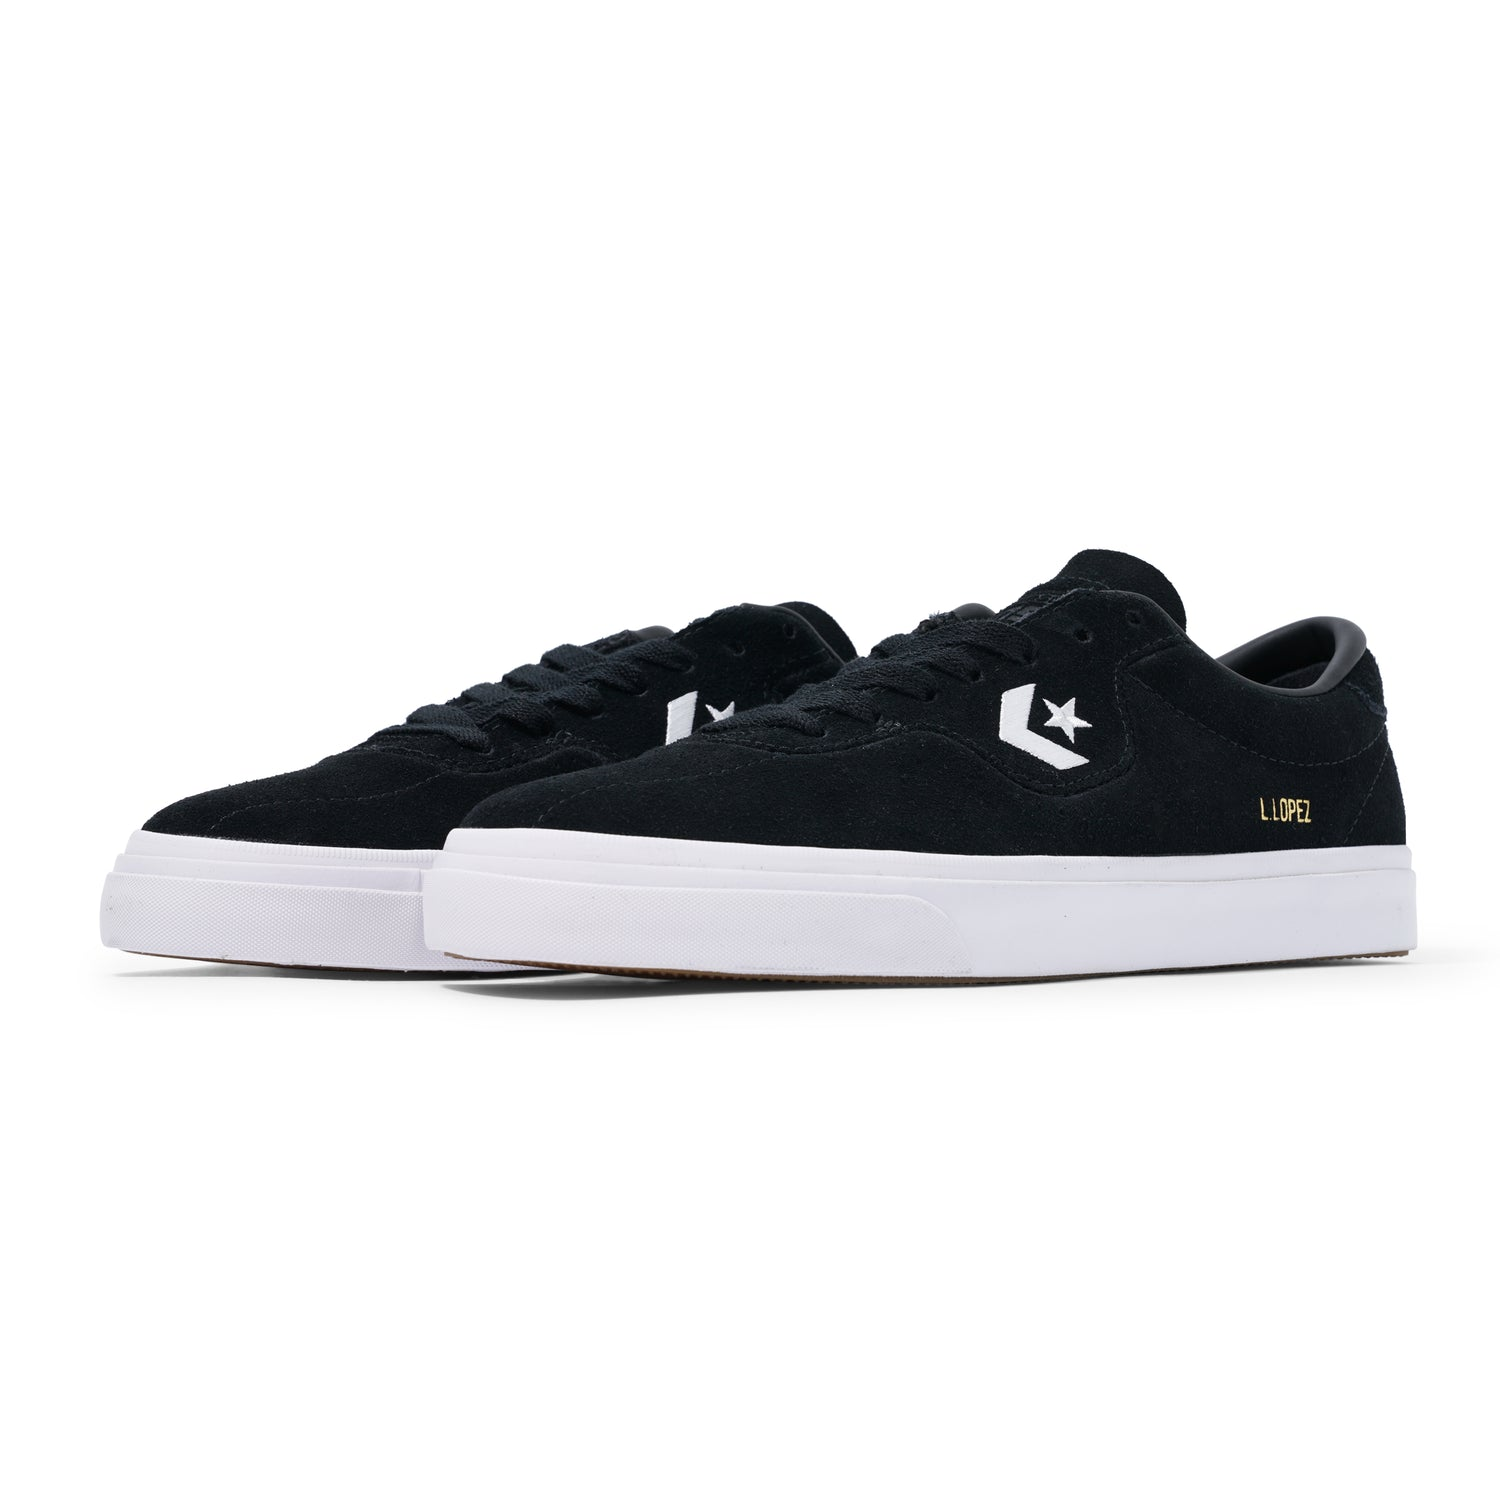 Louie Lopez Pro Low, Black / White